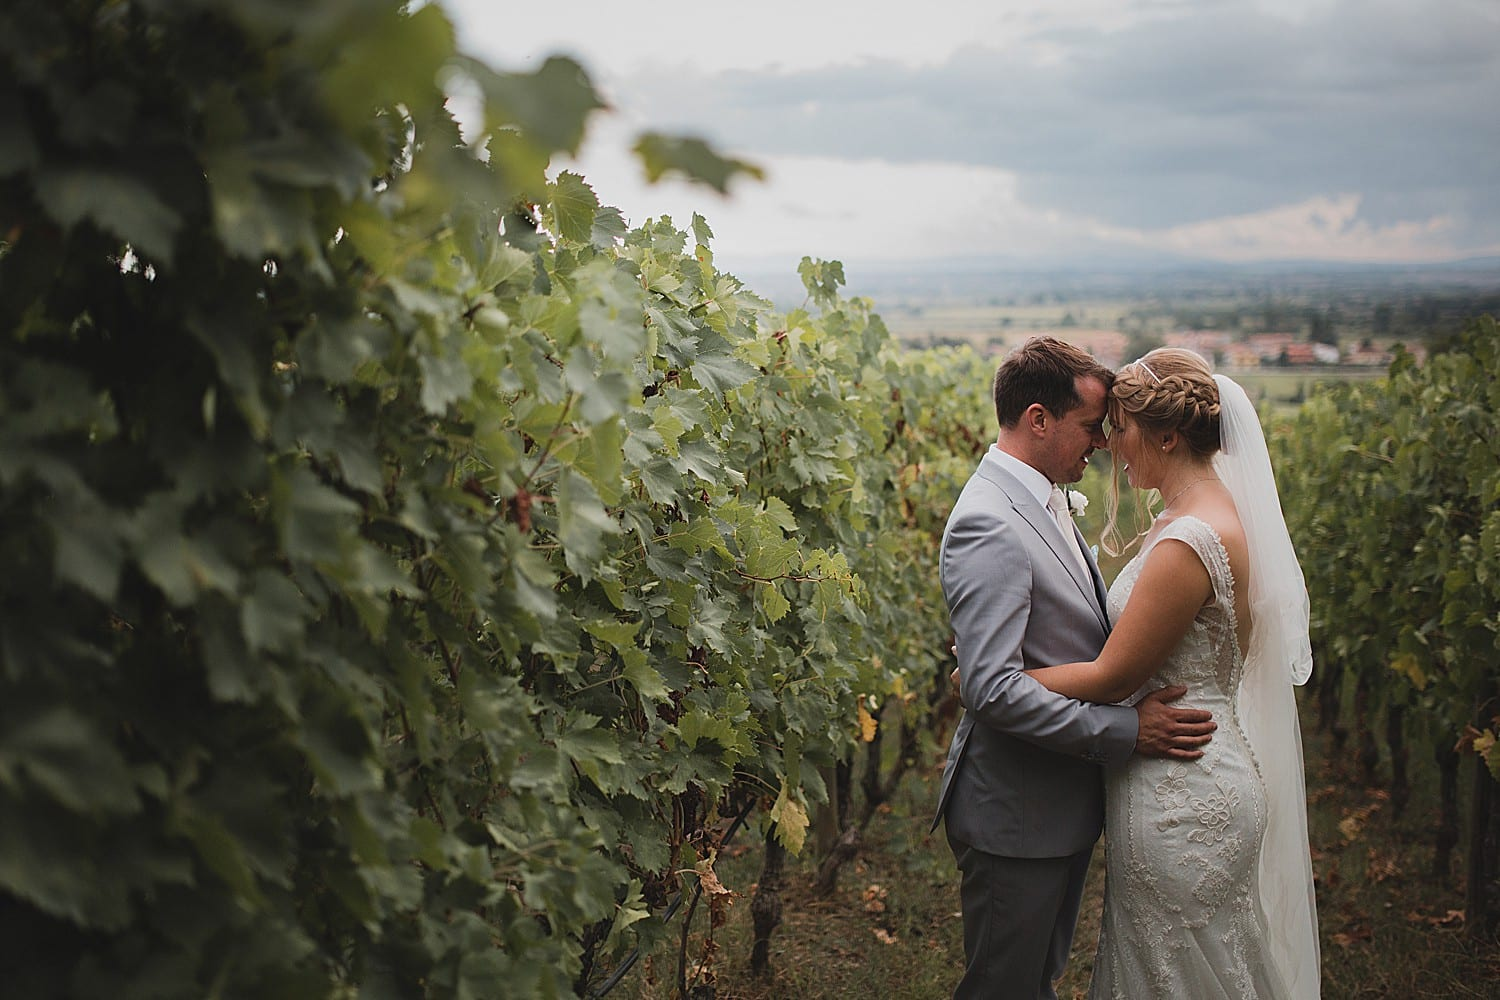 Bride and groom in Tuscany vineyard